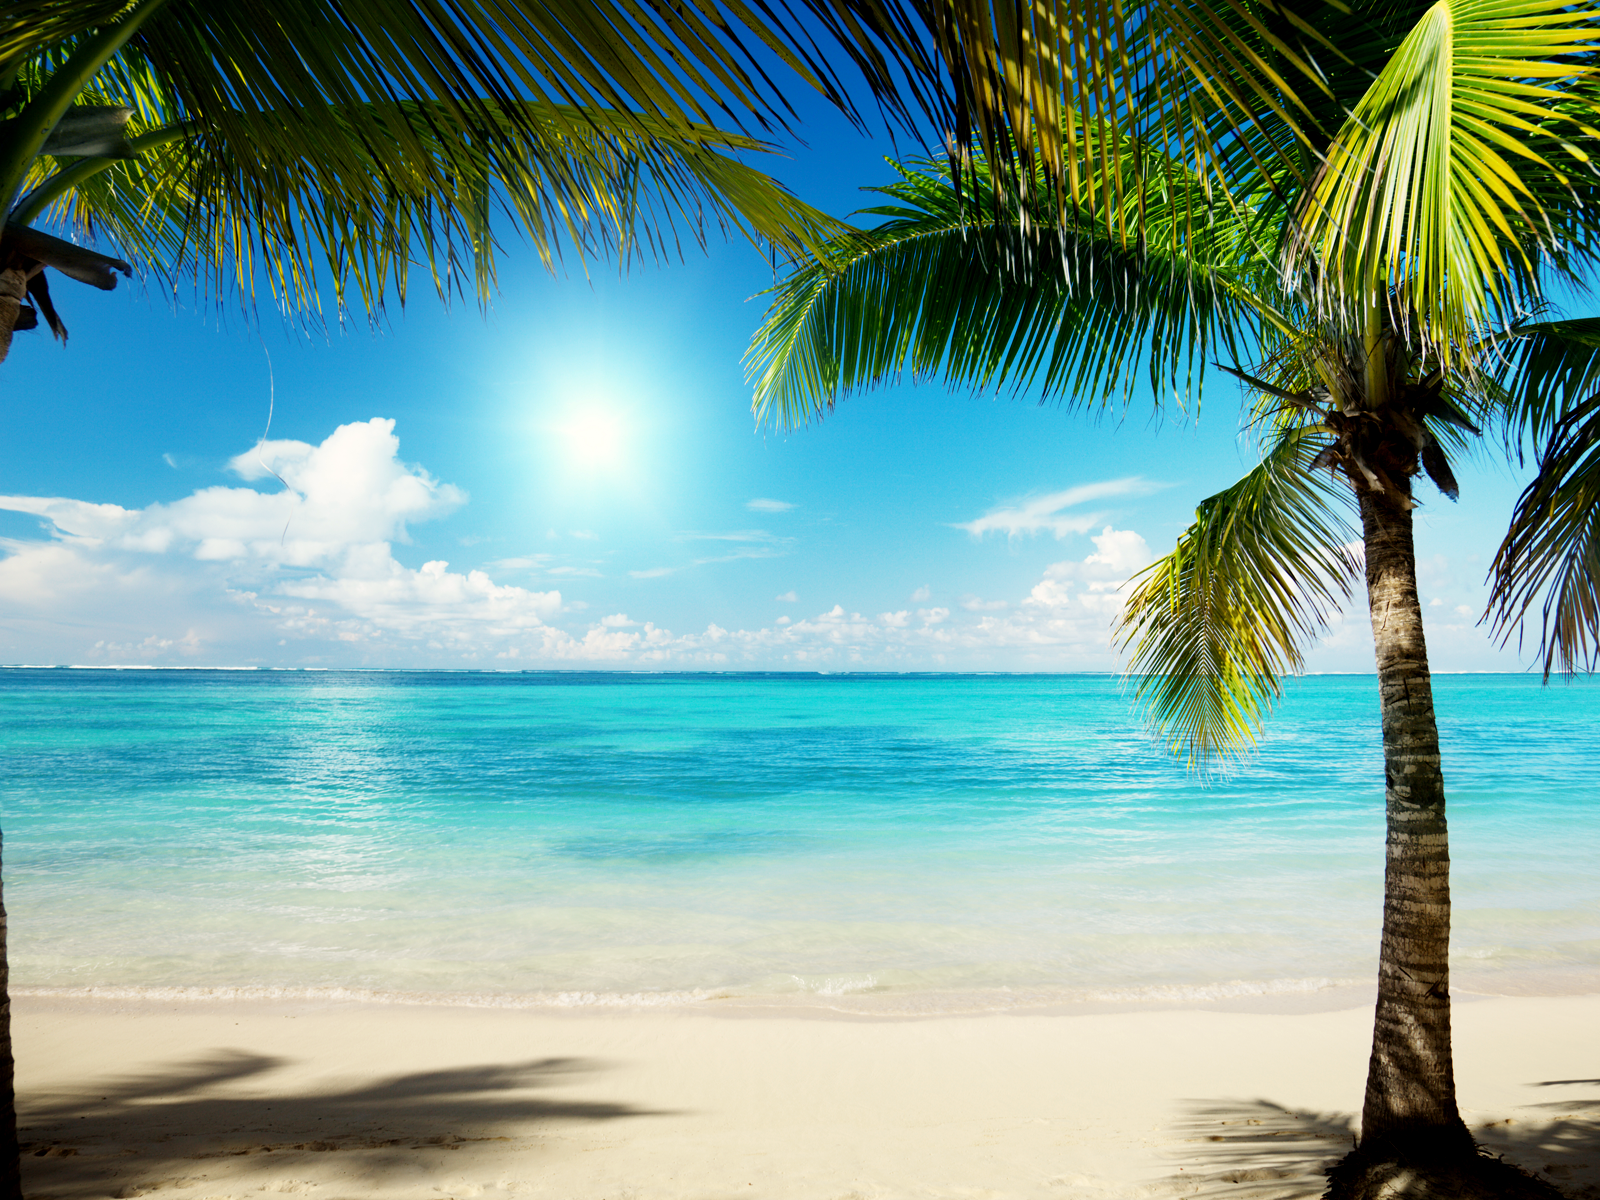 Caribbean Summer Beach Background Wallpaper   HD Wallpaper 1600x1200